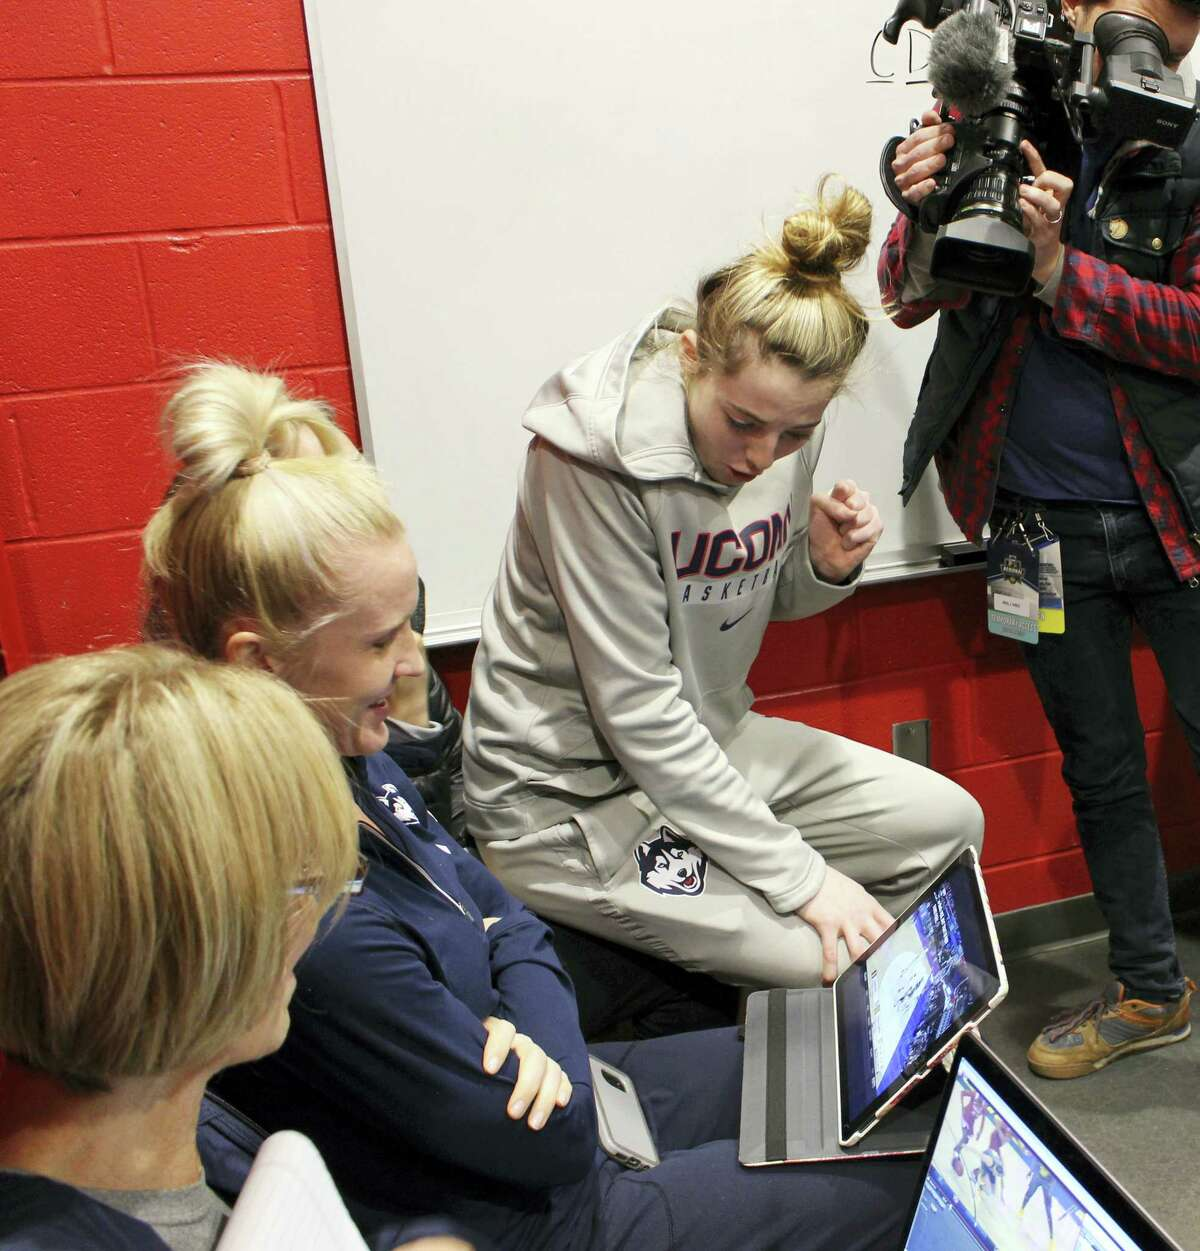 UConn's Katie Lou Samuelson watches a computer in the team's locker room in Bridgeport as her sister Karlie's Stanford team takes on Notre Dame in the Lexington regional on Sunday.